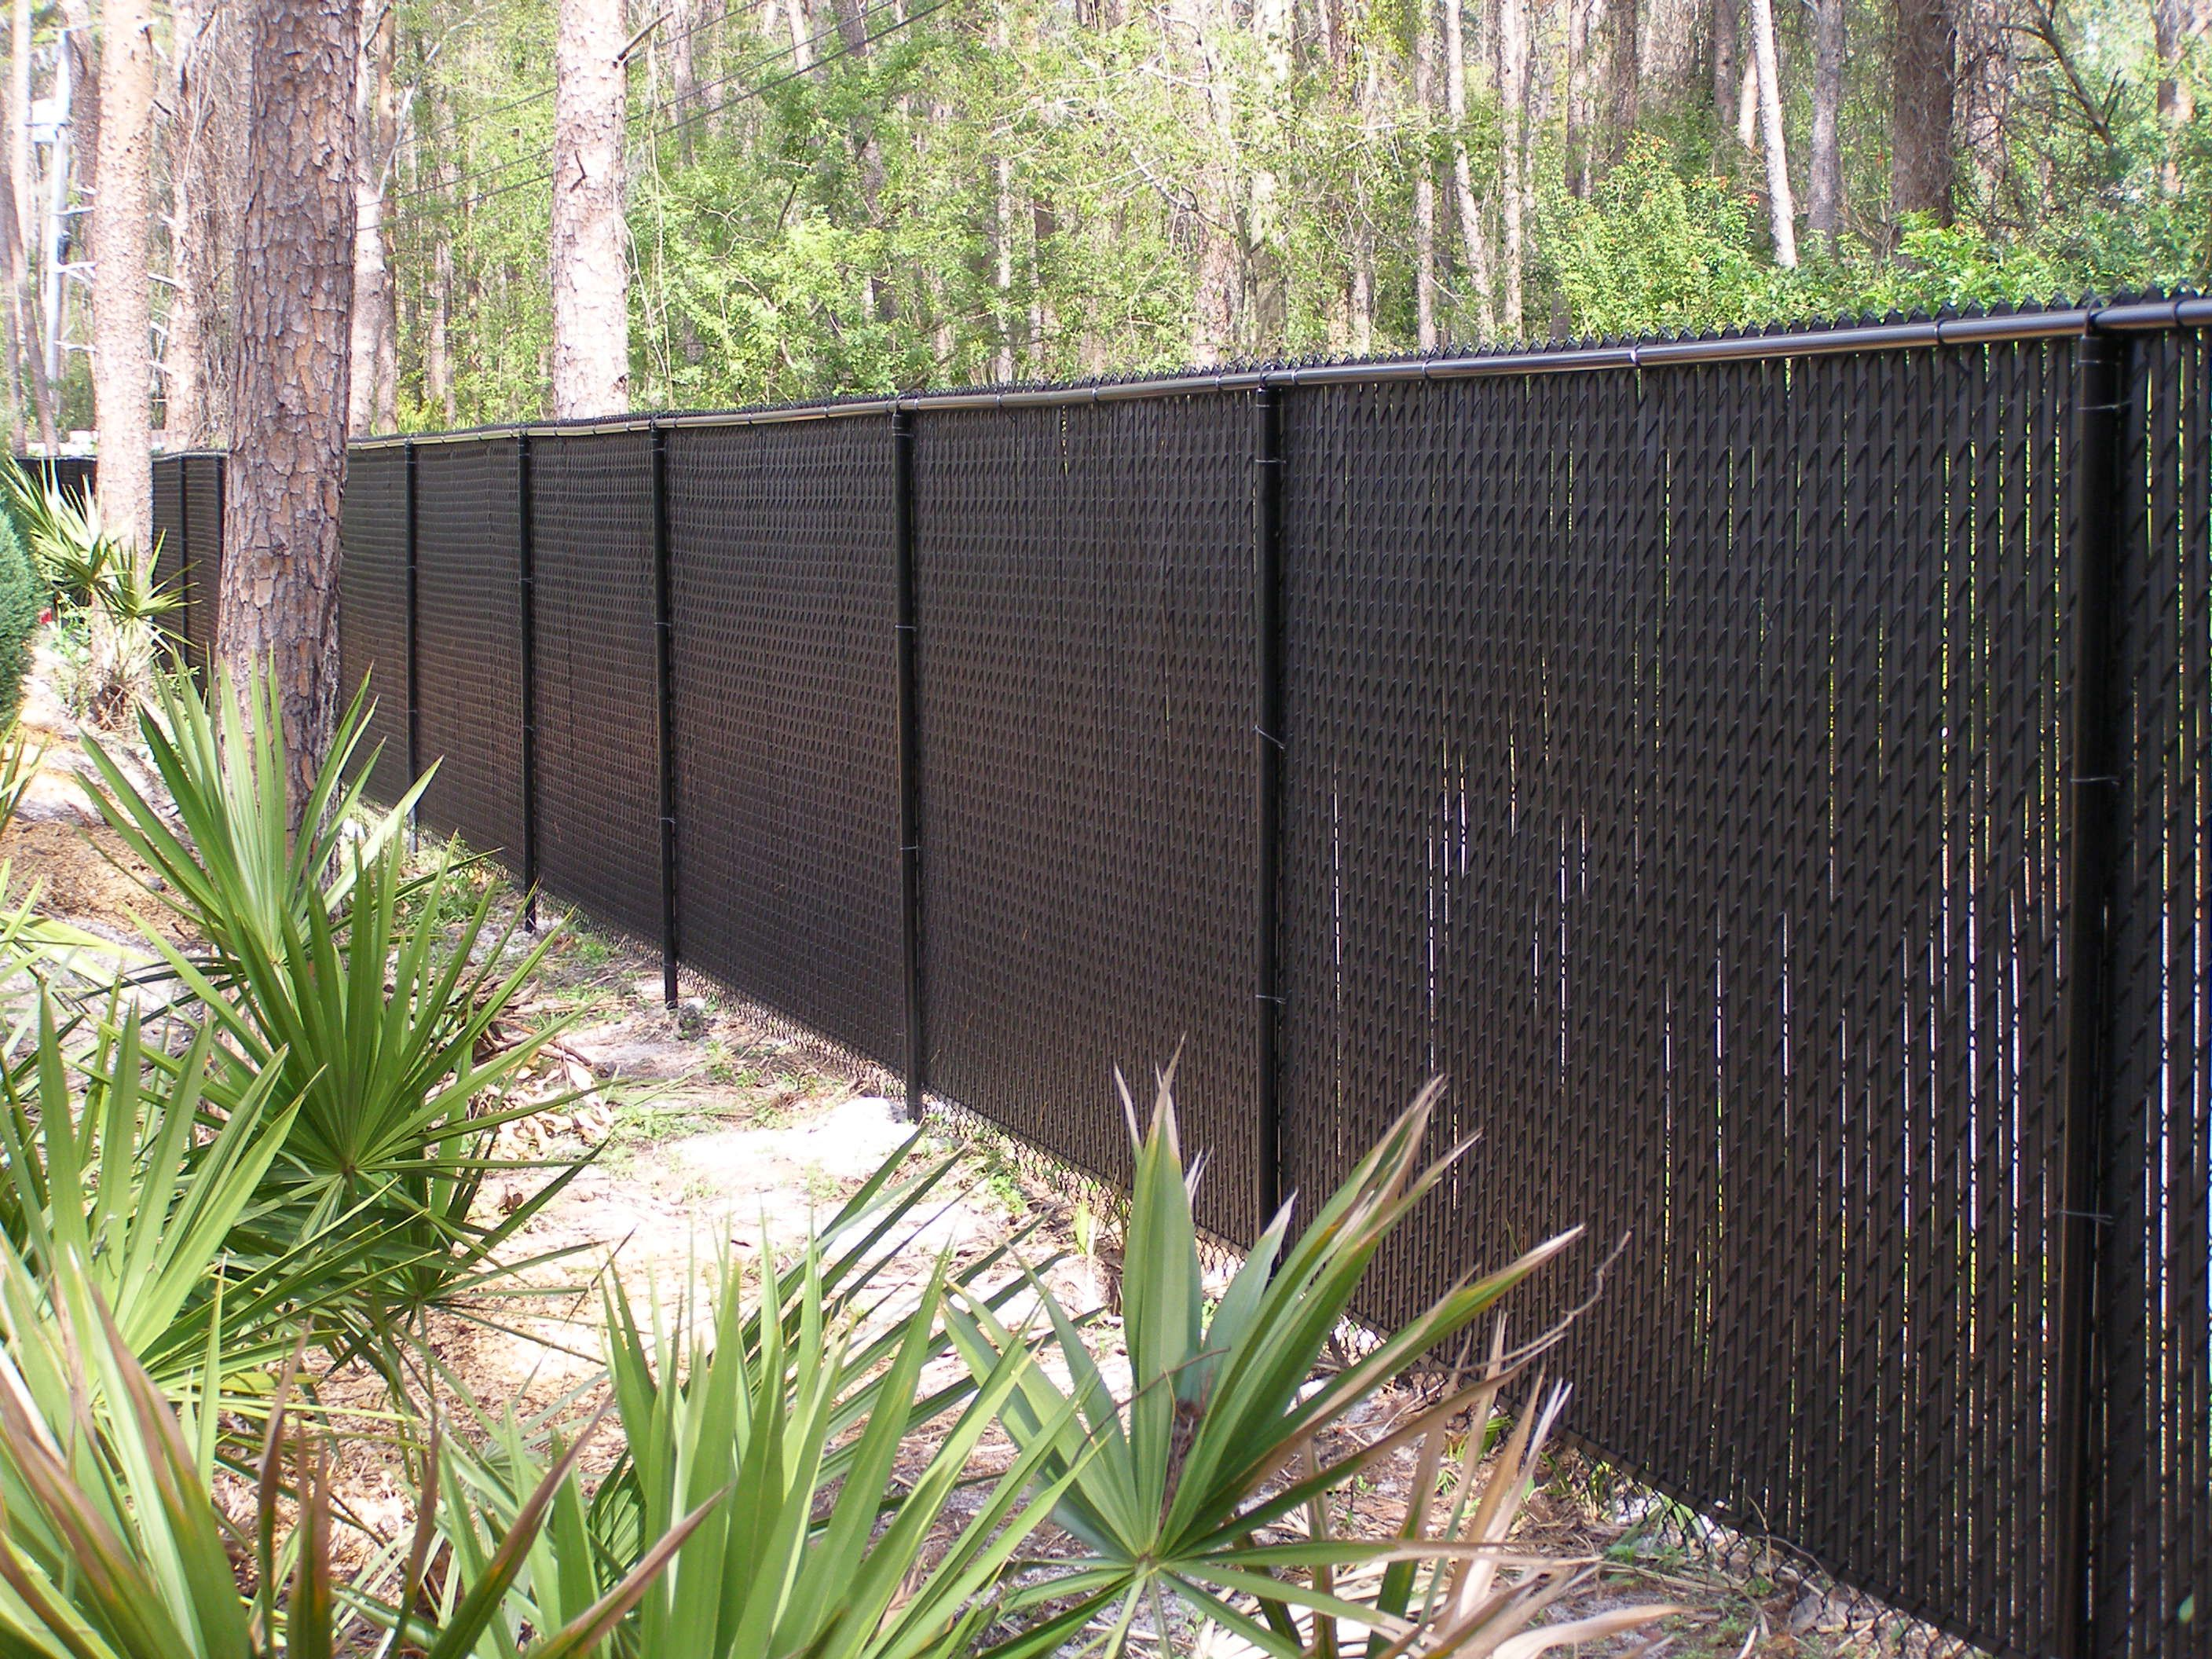 Chain Link Fence Vinyl Slats Google Search Chain Link